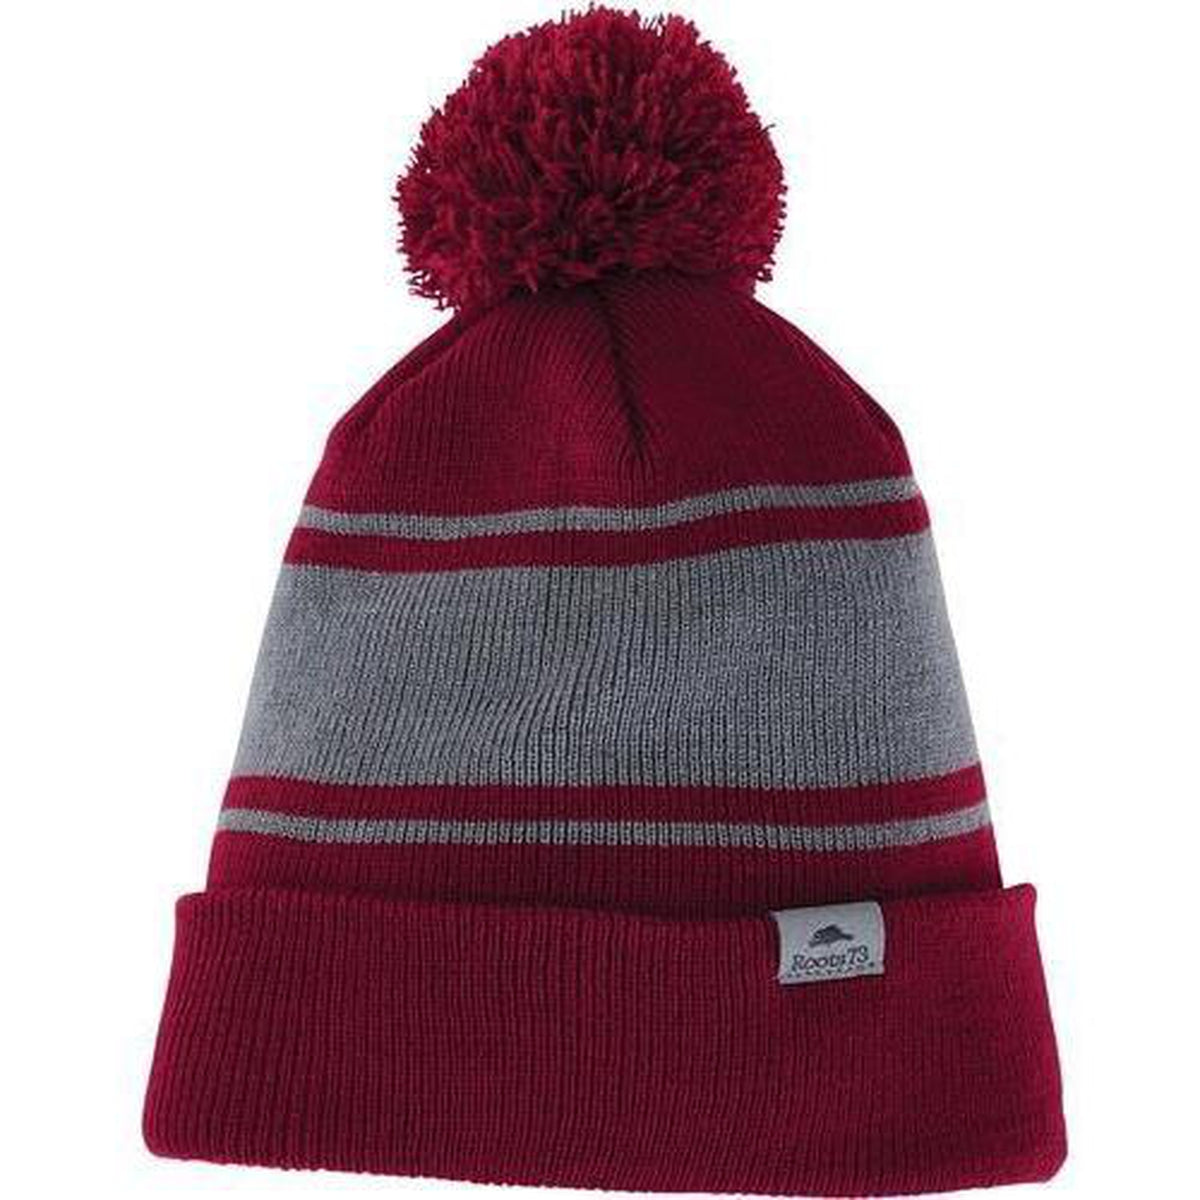 Roots73 Parktrail Knit Toque